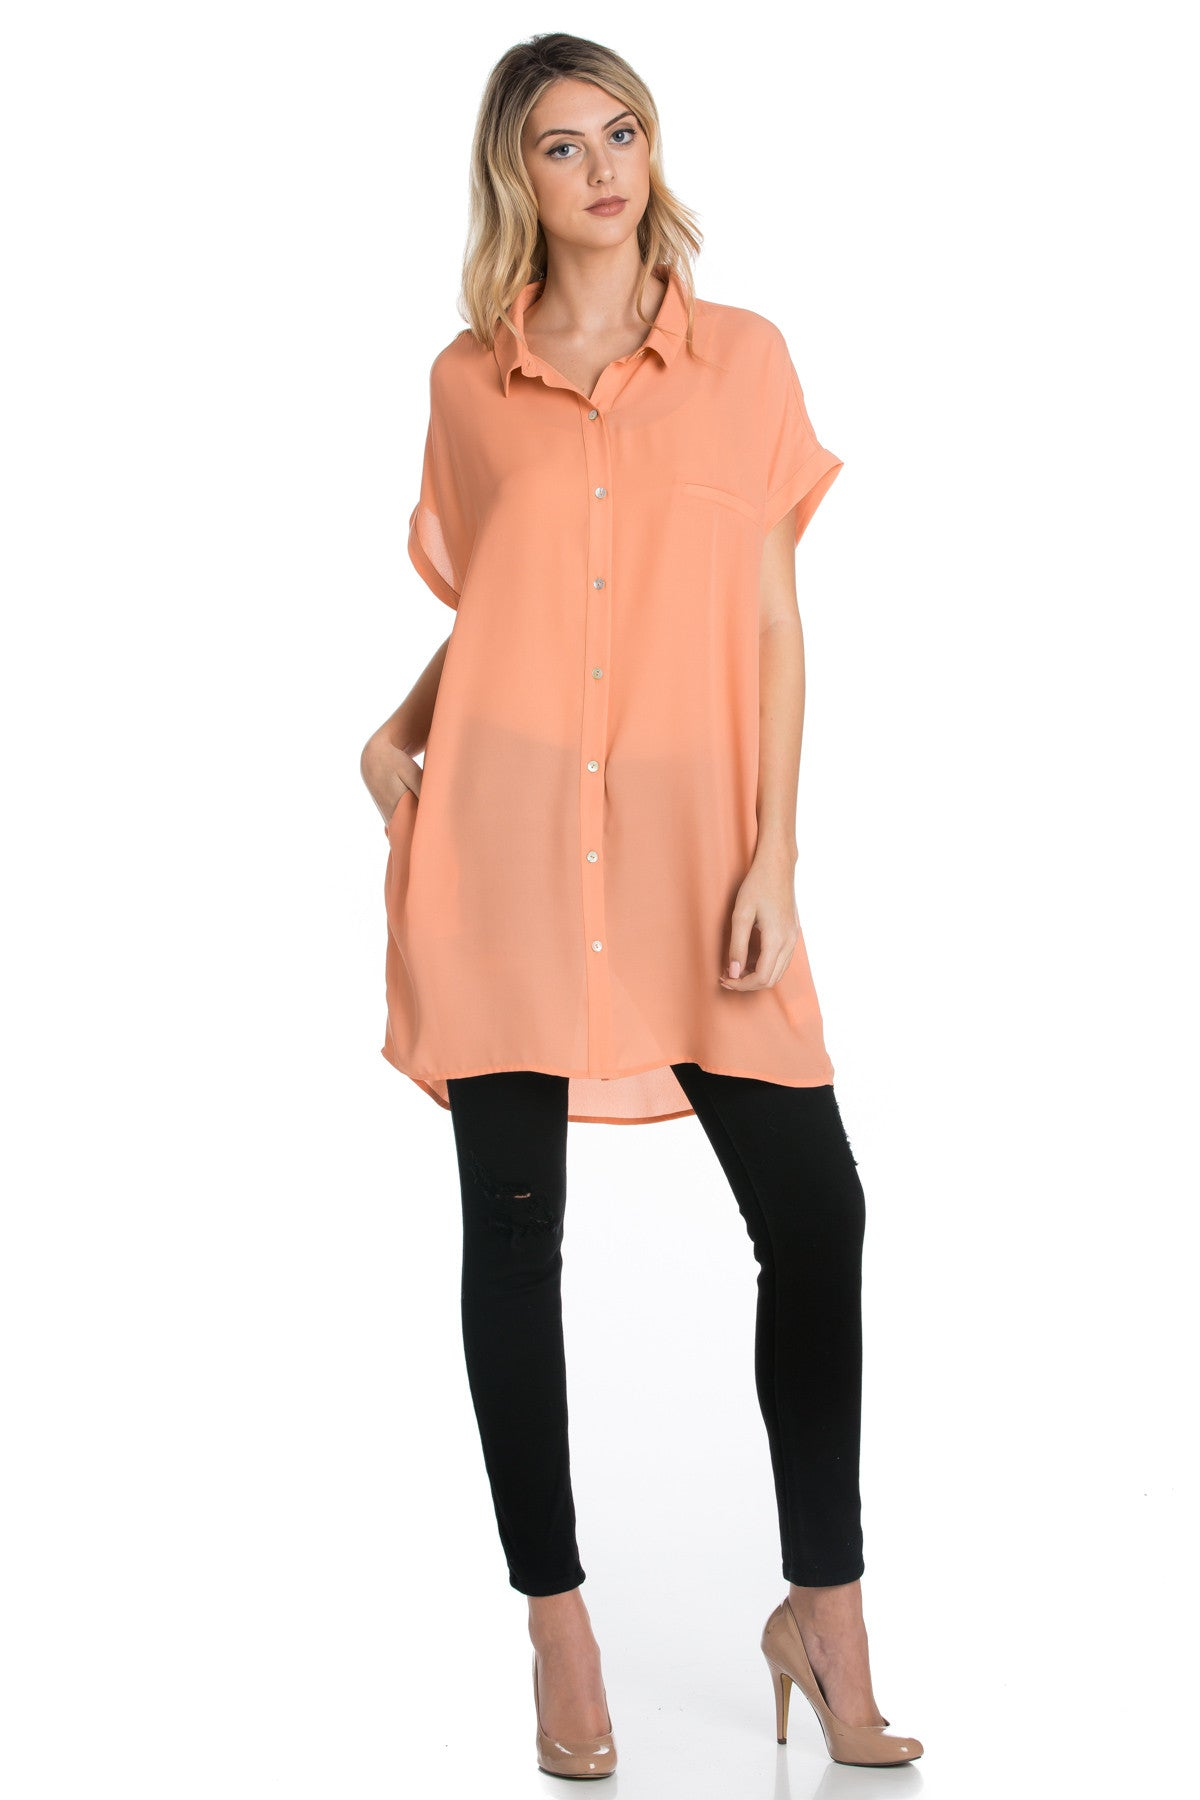 Short Sleeve Longline Button Down Chiffon Top in Sun Coral - Tops - My Yuccie - 12